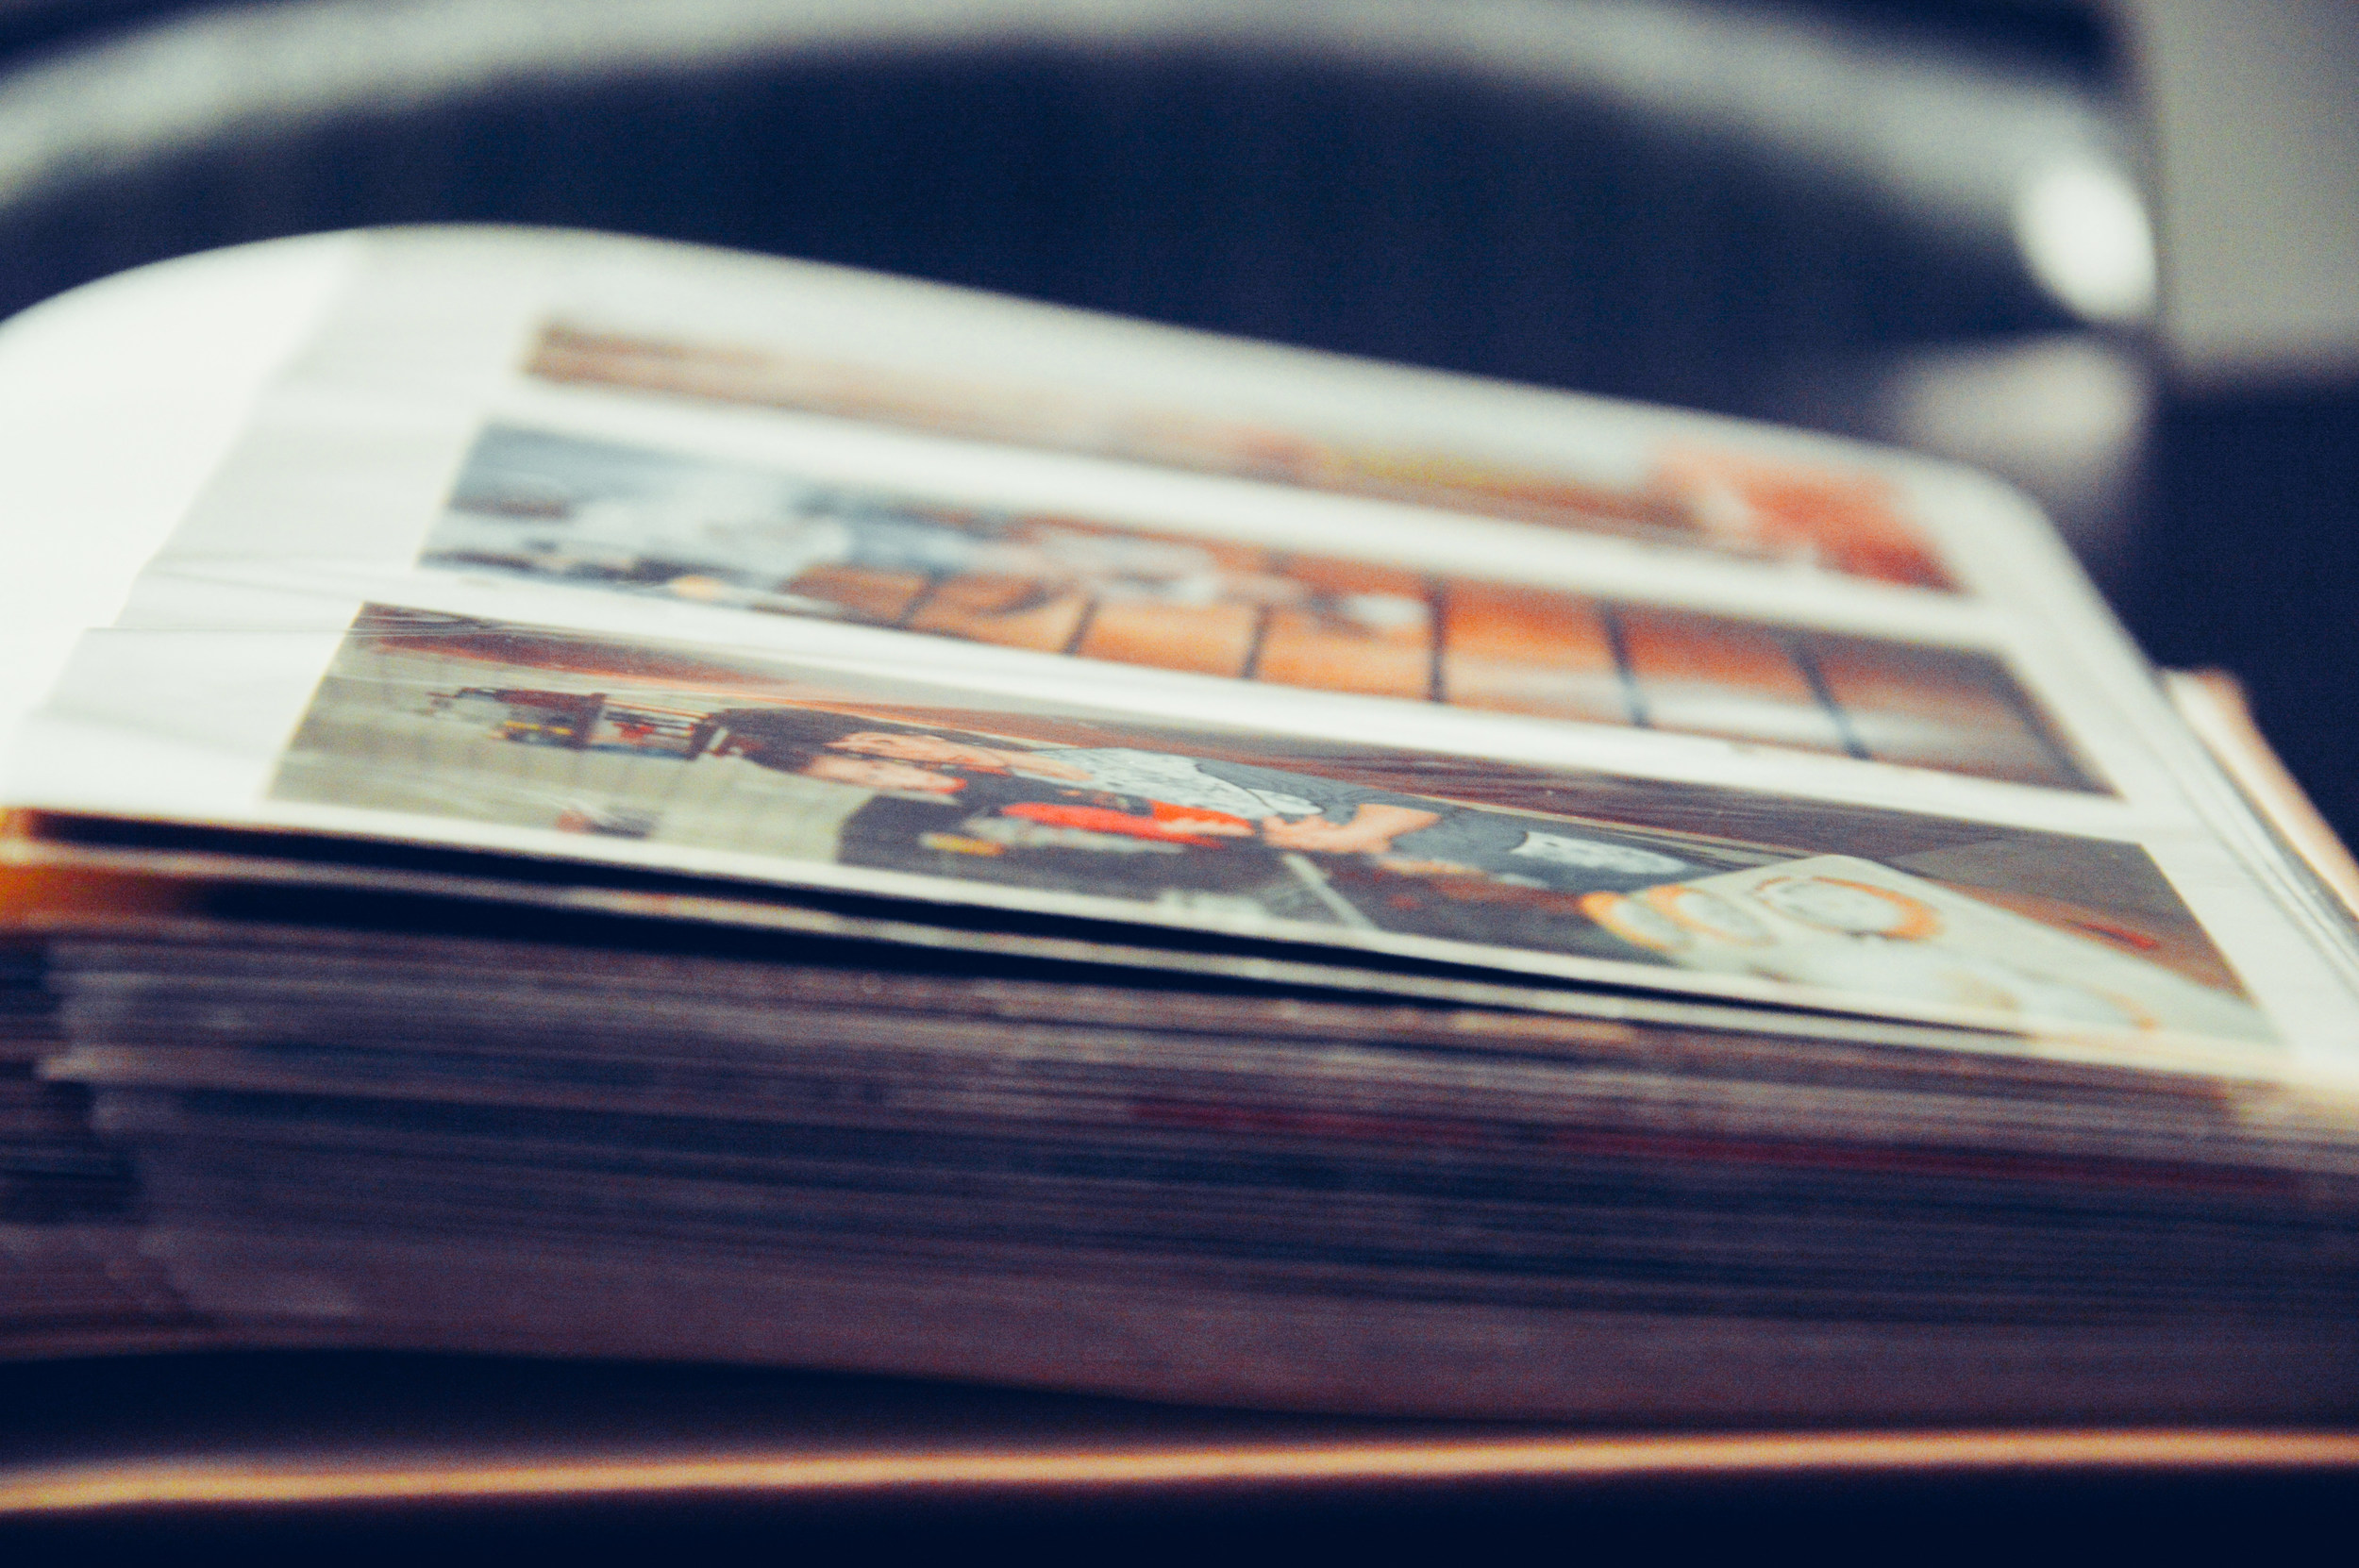 A magnetic or sticky photo album